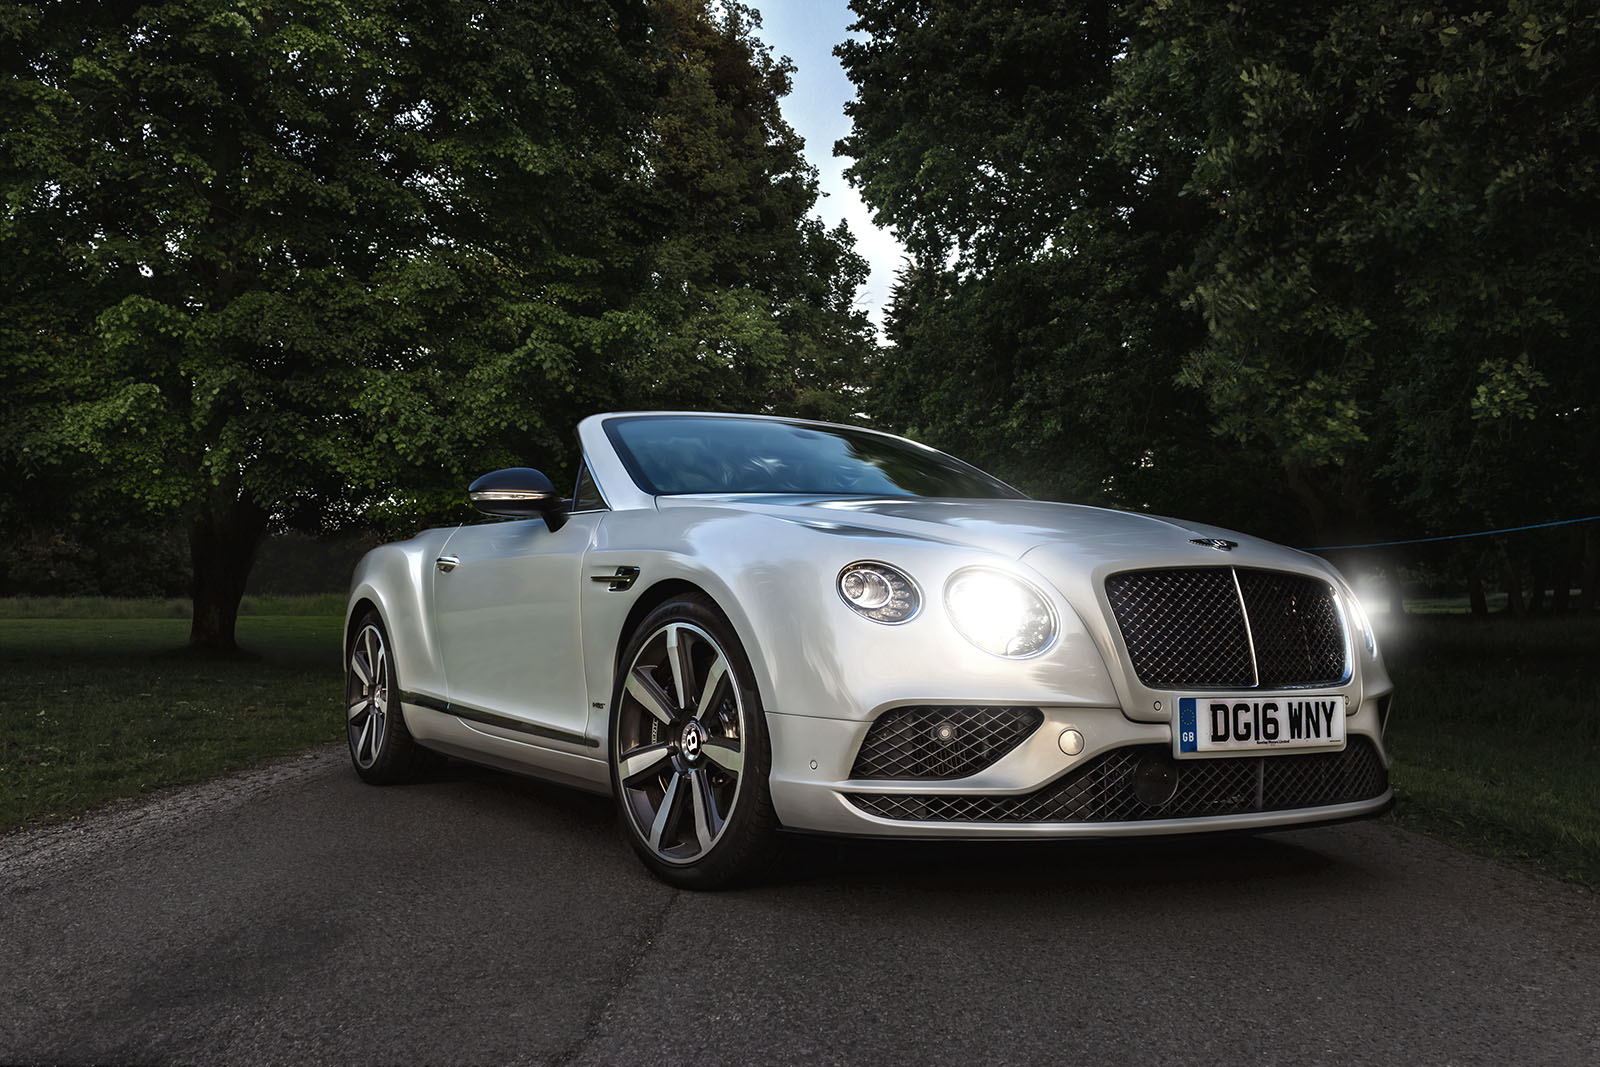 Top Down In The Bentley Gtc V8s Mr Goodlife